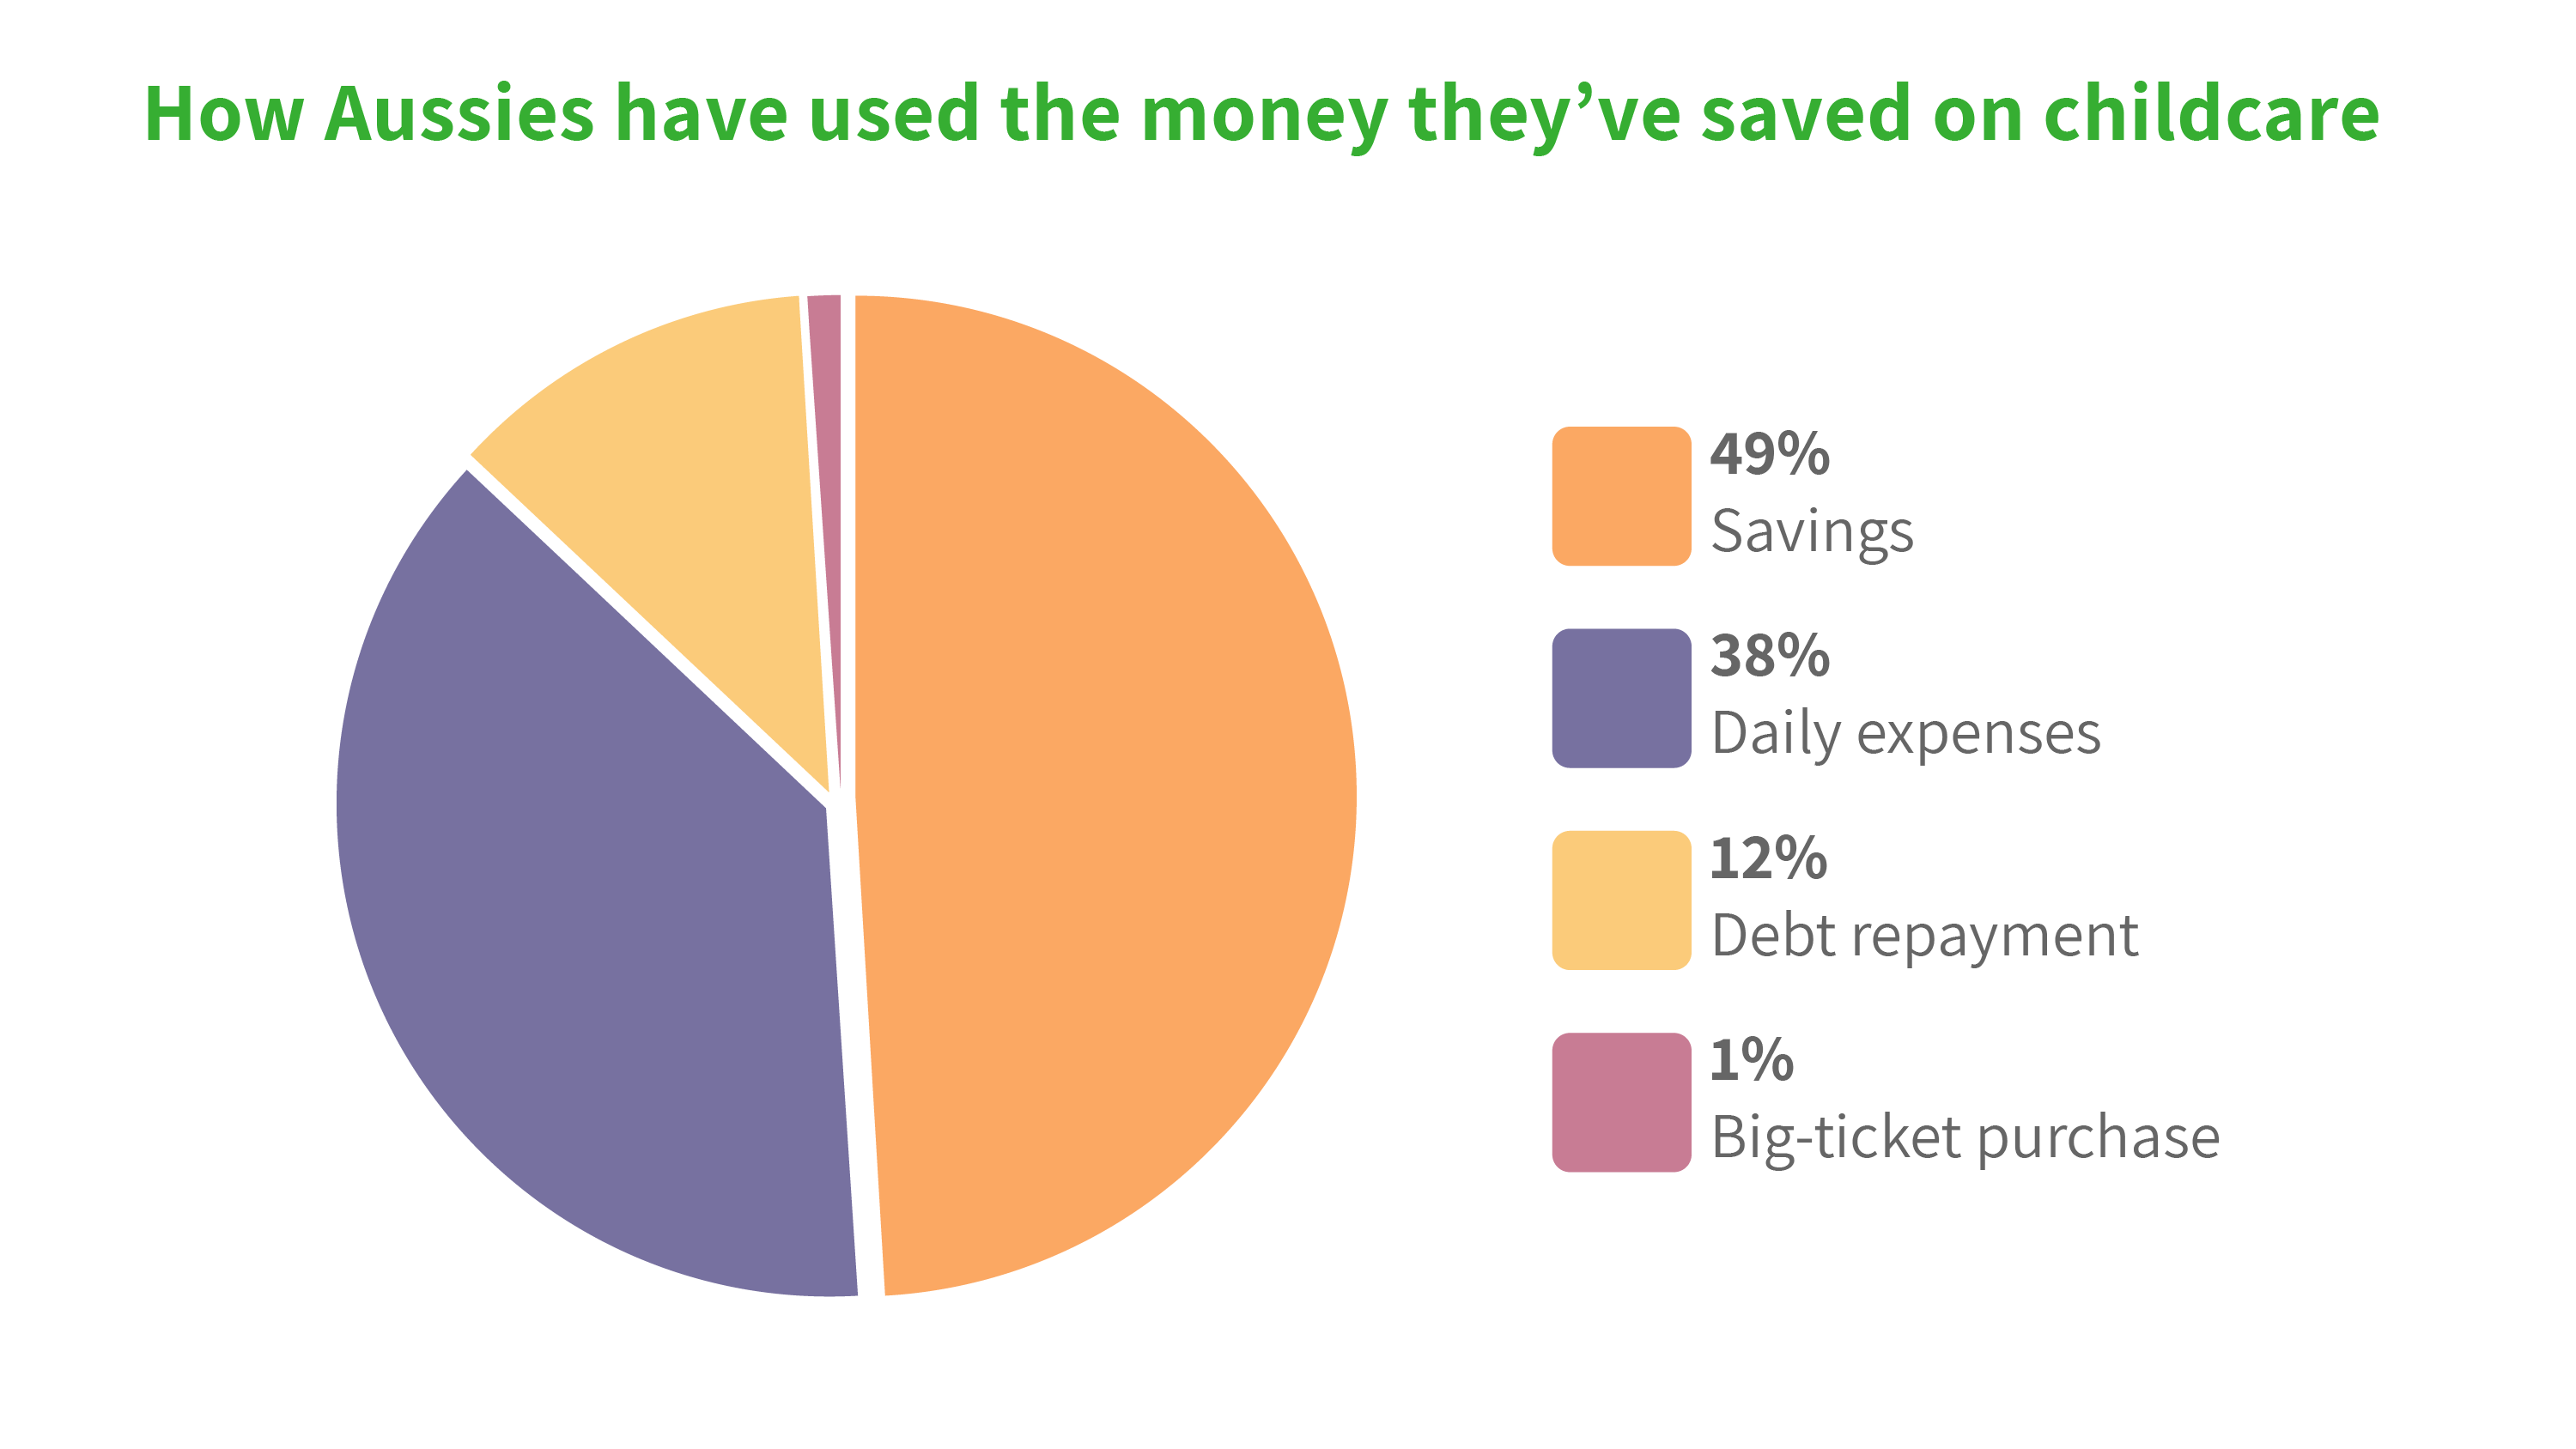 Family savings from free childcare during Covid-19